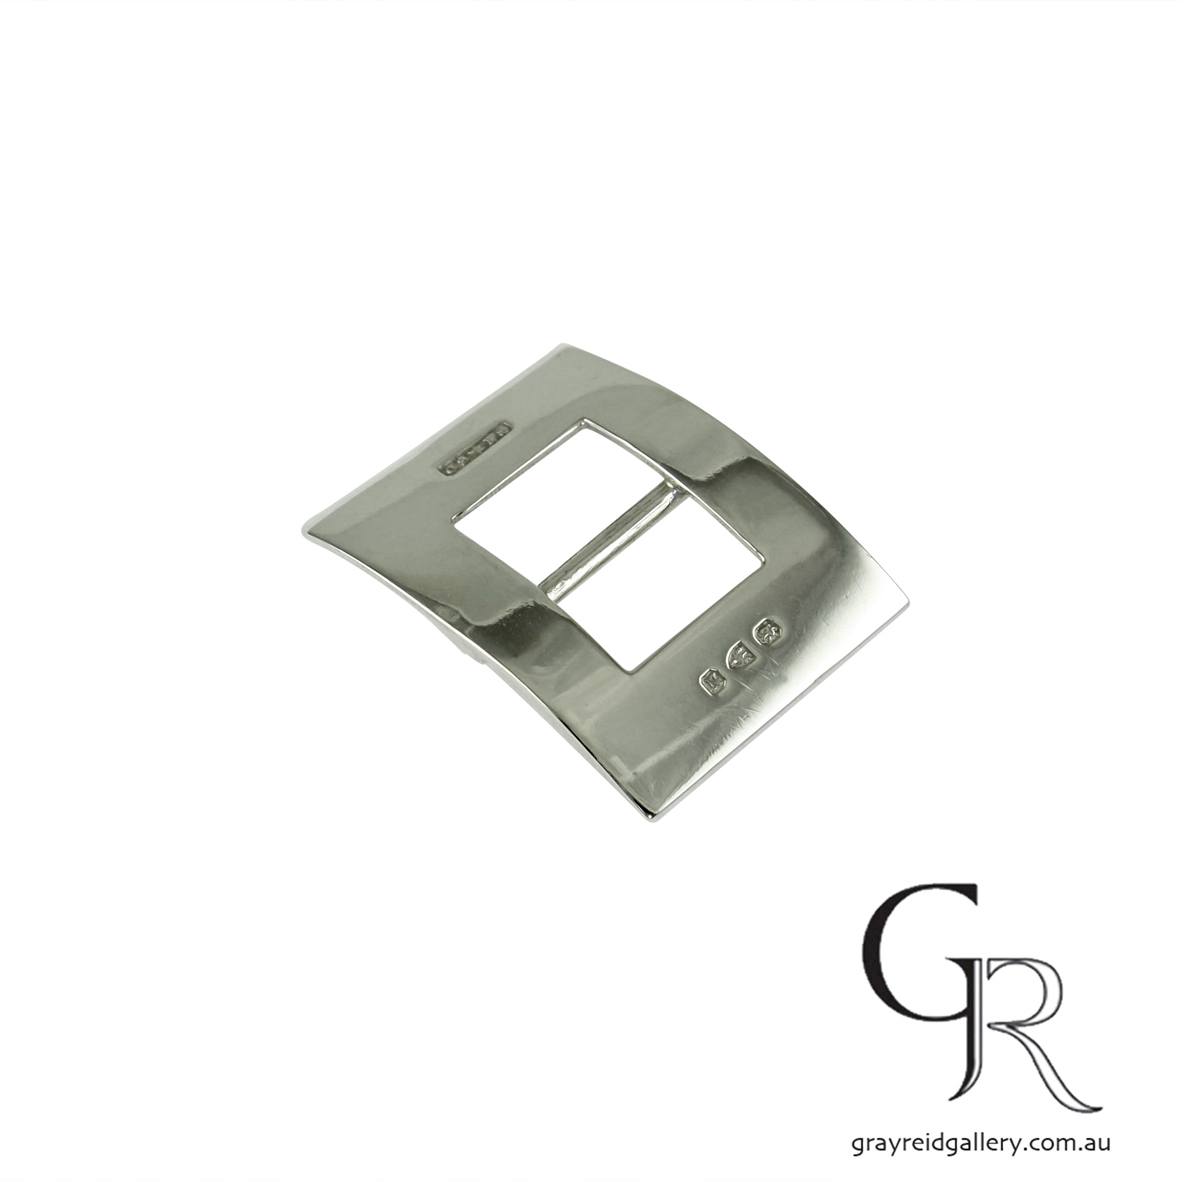 antiques and collectables melbourne sterling silver belt buckle Gray Reid Gallery 7.jpg